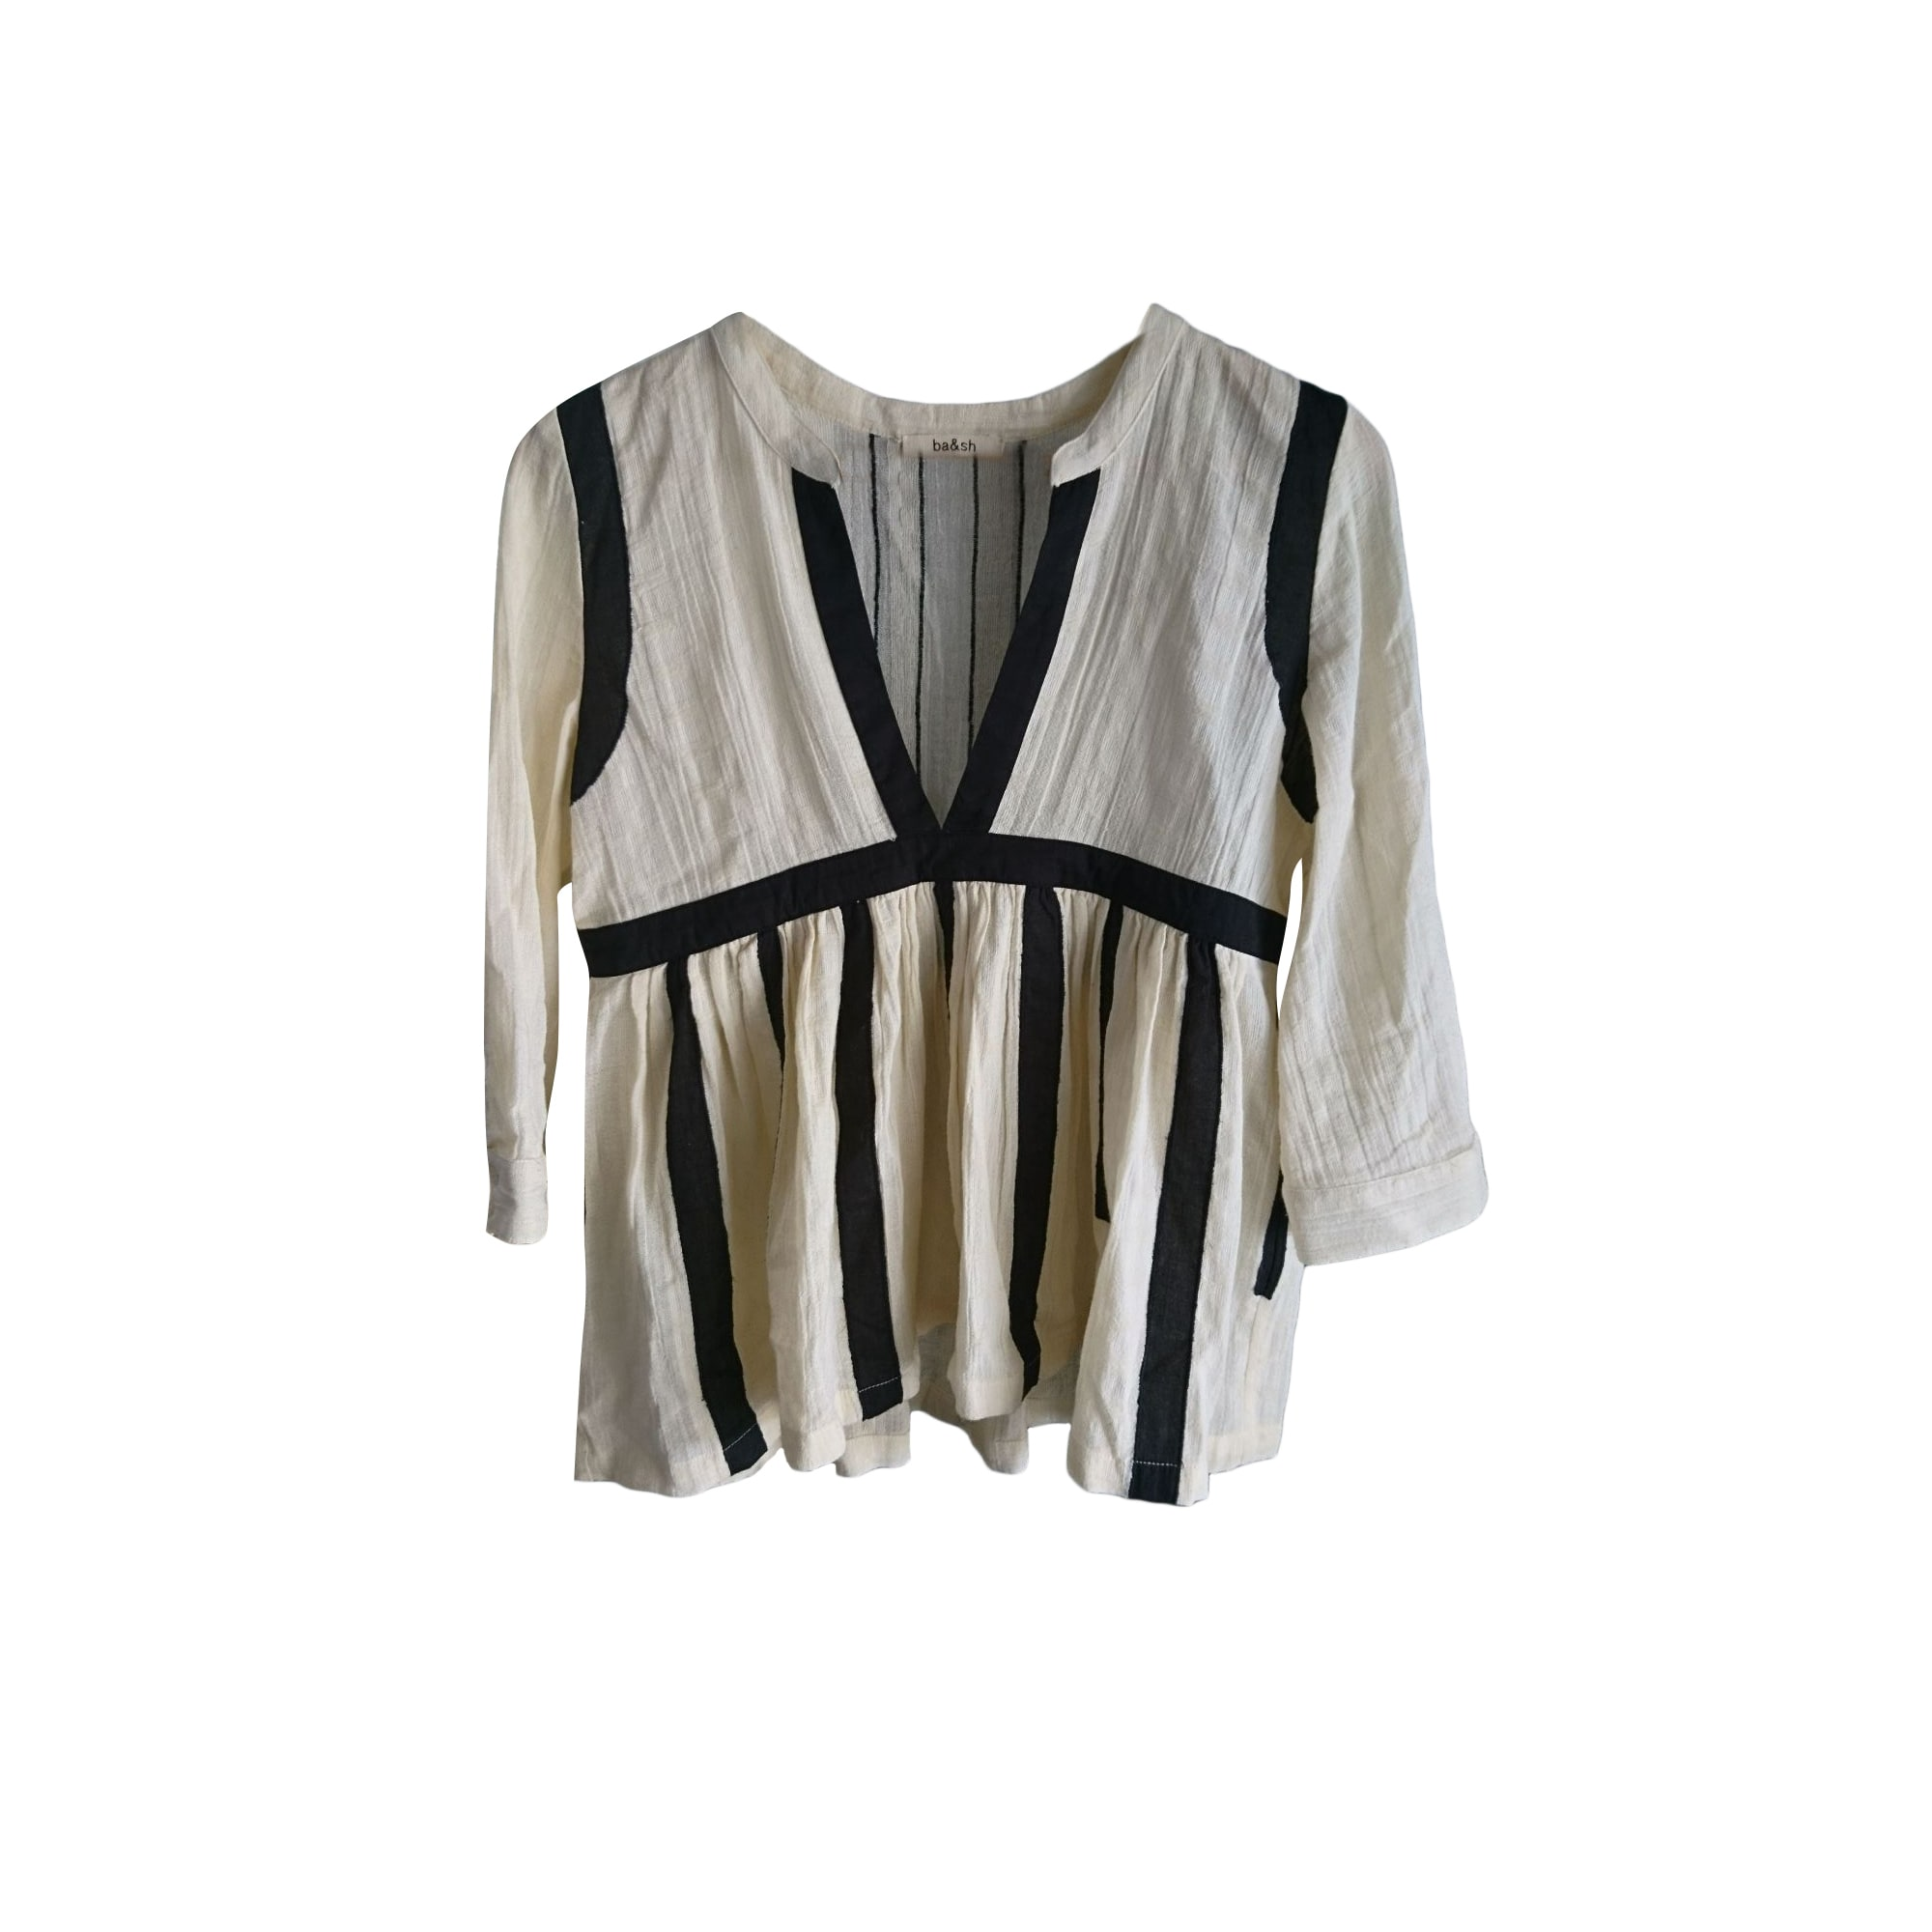 Blouse BA&SH White, off-white, ecru